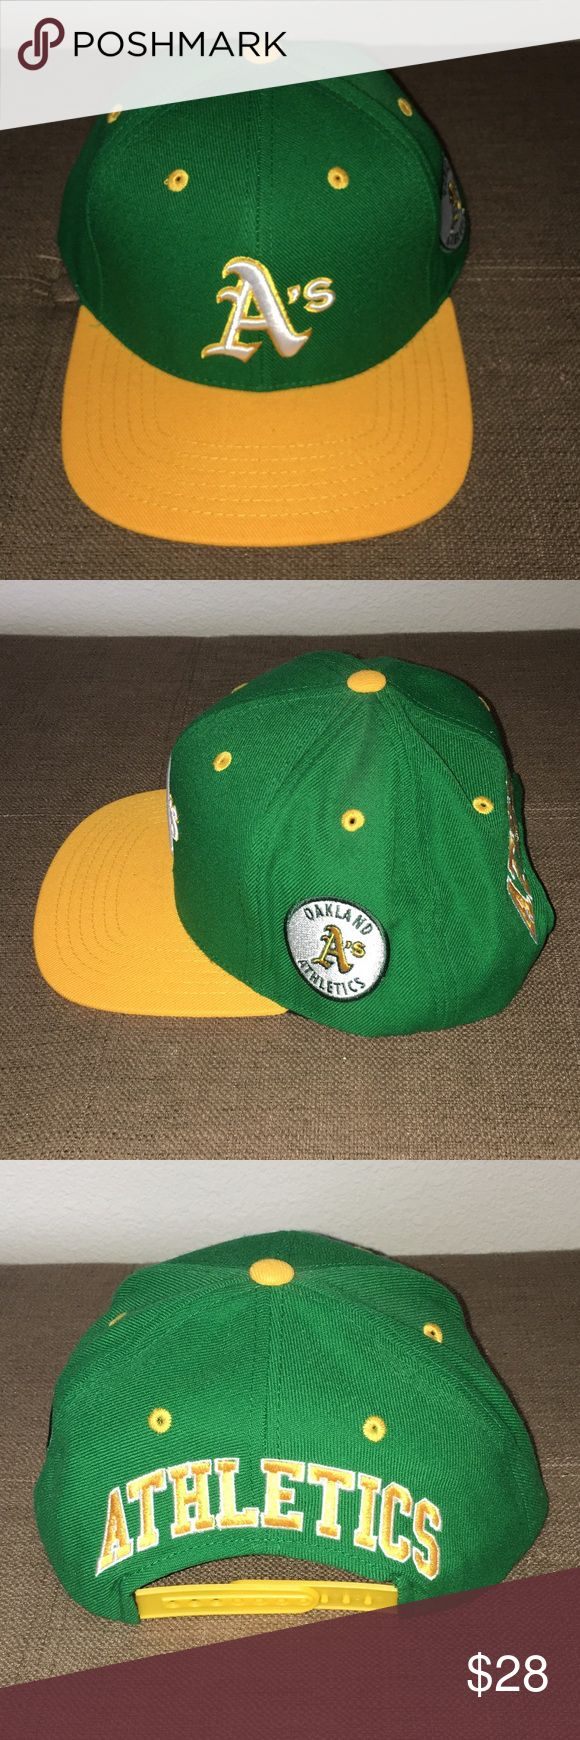 Oakland A's Throwback Snap back Coopers Town A's Men's Fitted Baseball Cap Brand New. Worn once, excellent condition. Other